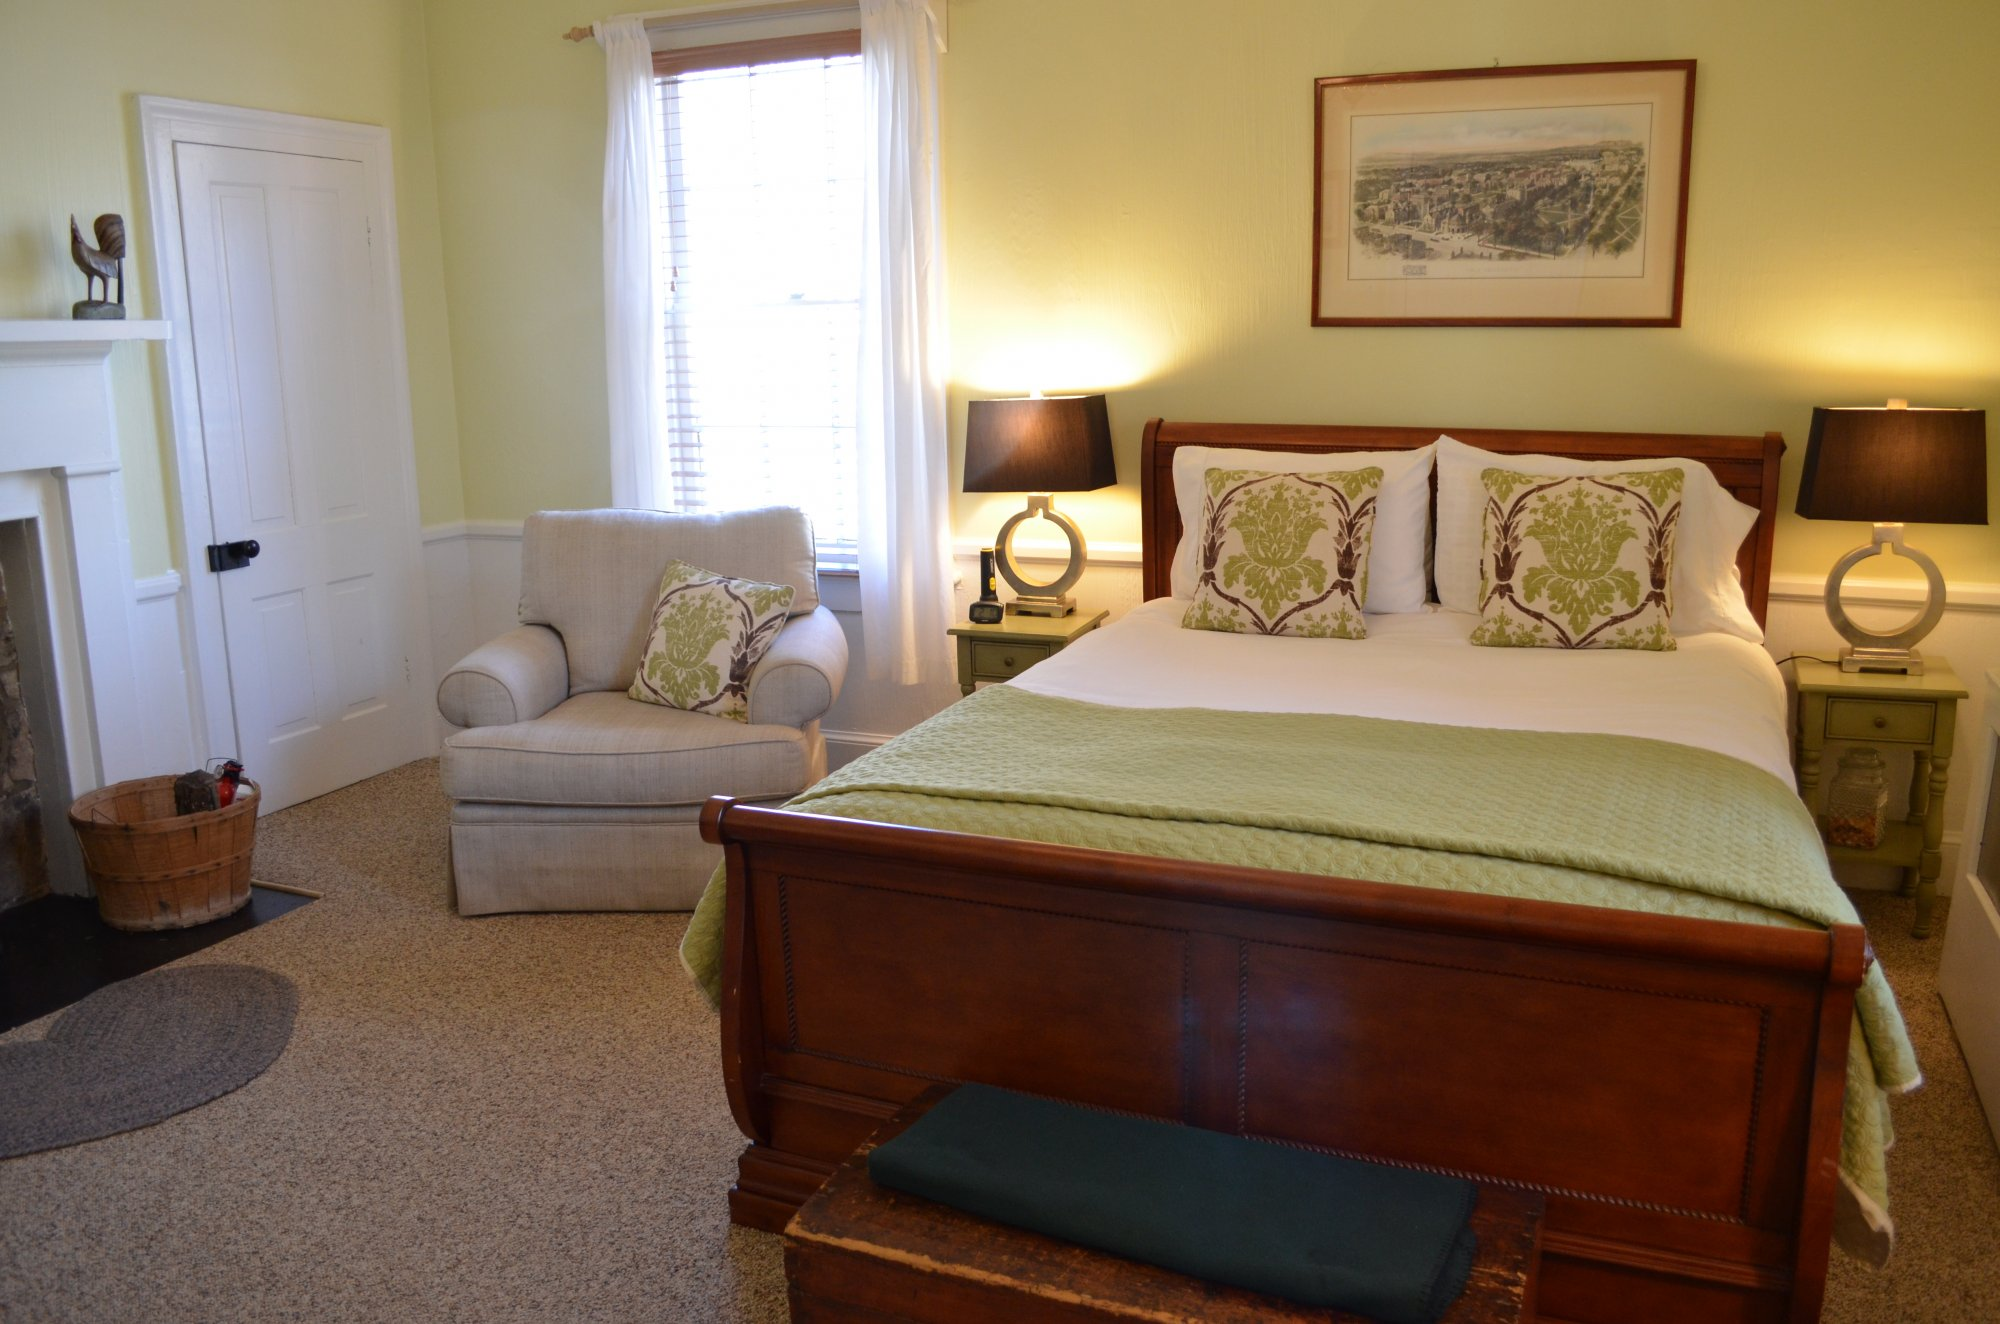 Croft Room at the Inn at Gristmill Square in Warm Springs, Virginia